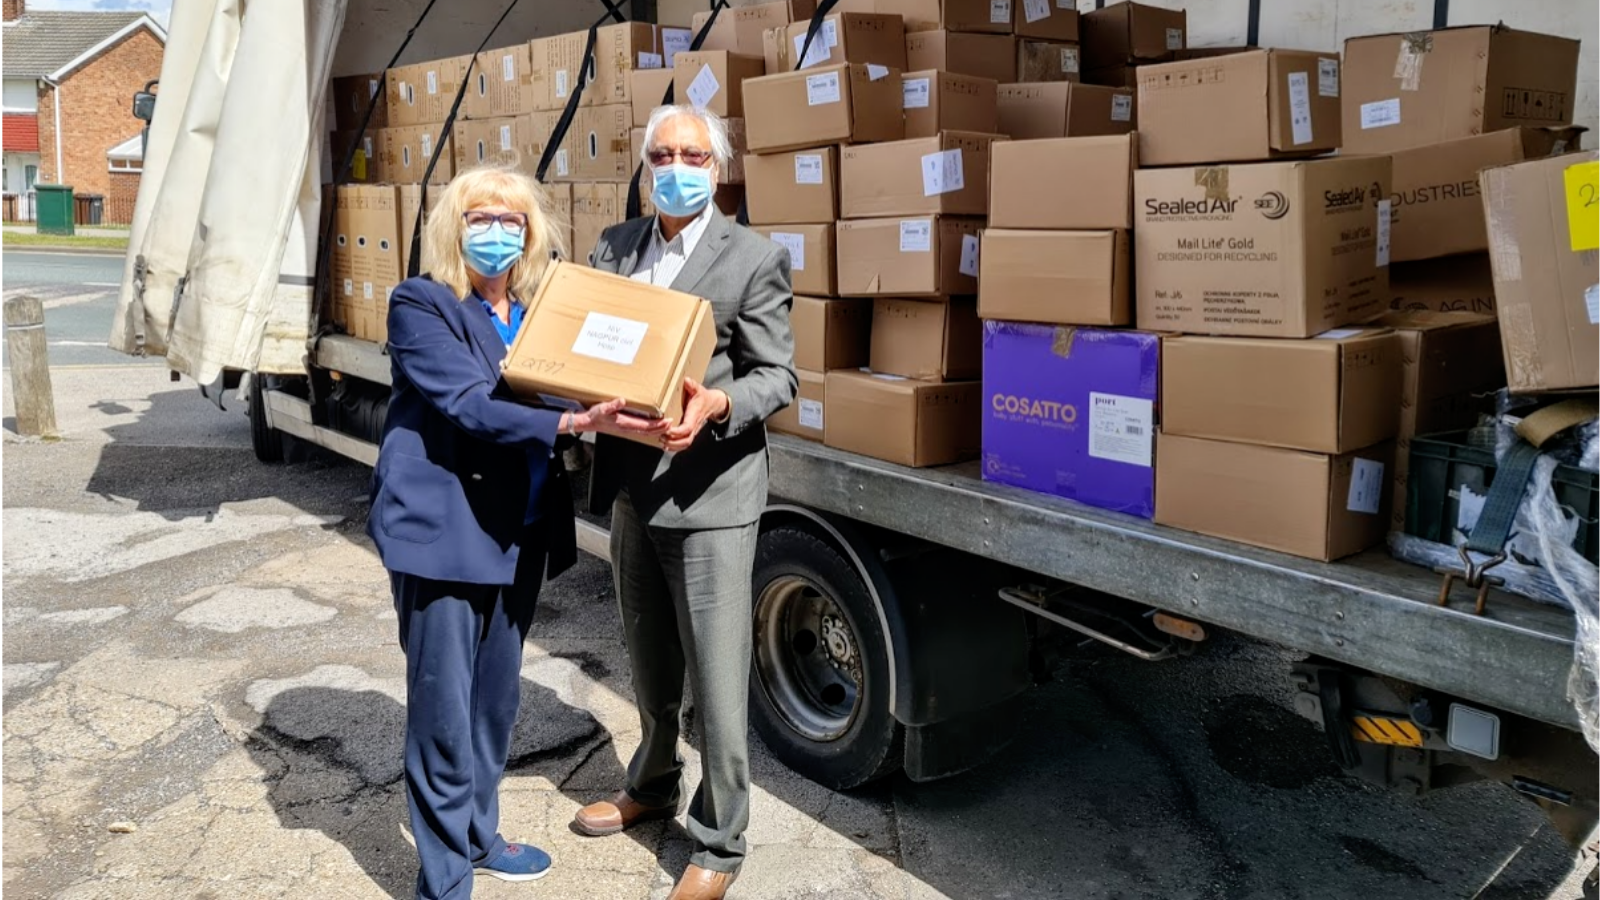 Donations of supplies that will support India's Covid-19 response